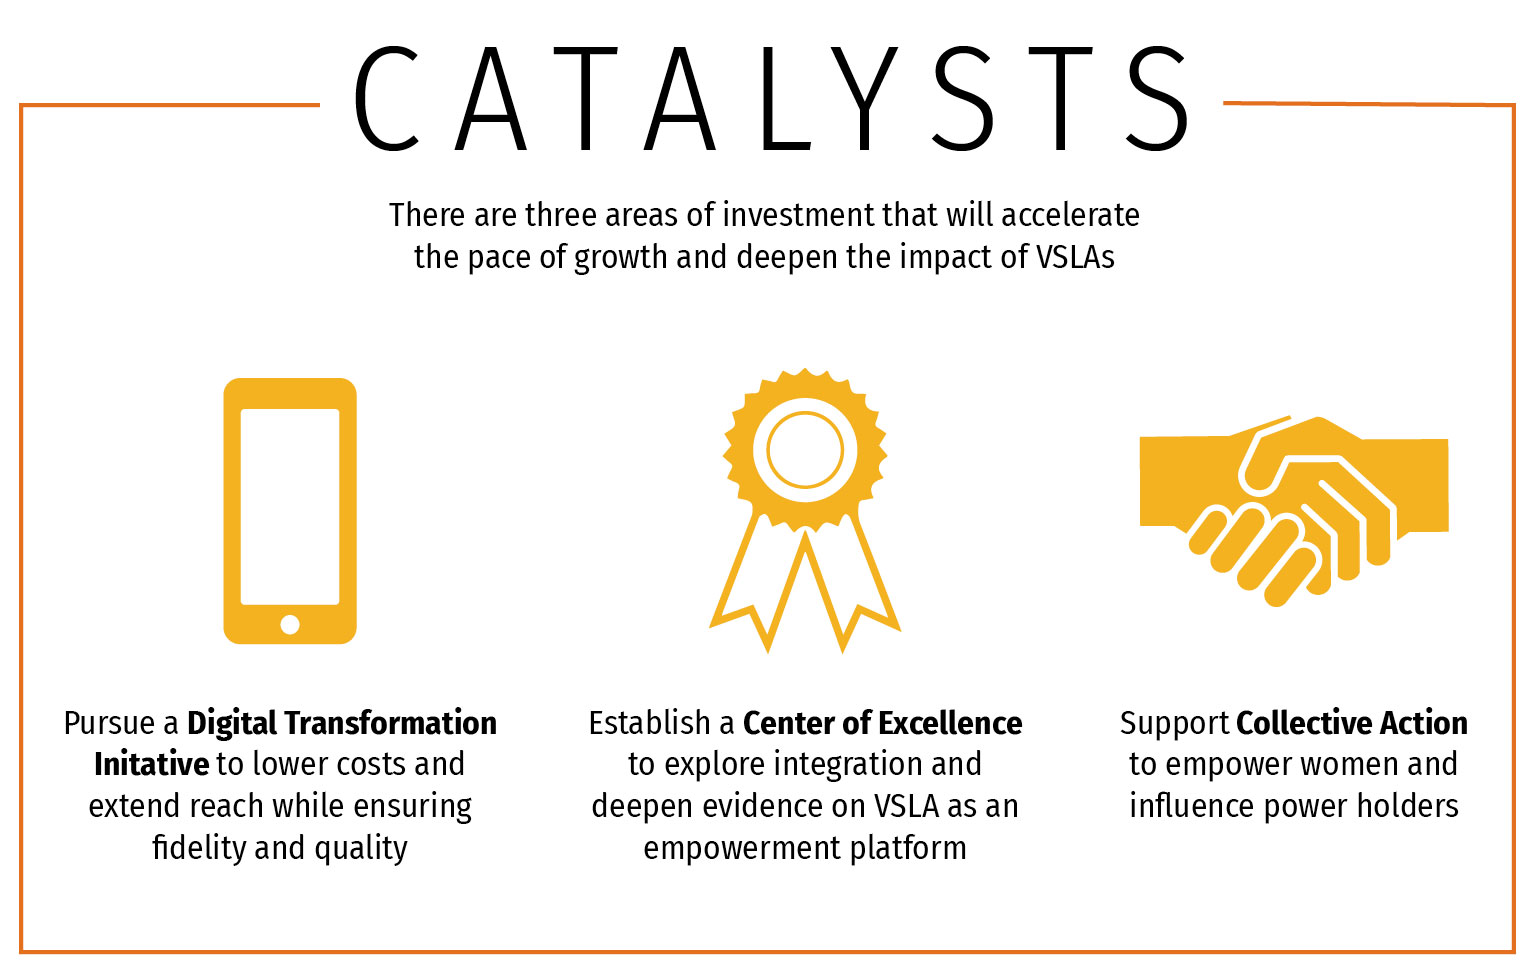 Infographic: There are 3 areas of investment that will accelerate the pace of growth and deepen the impact of VSLAs.